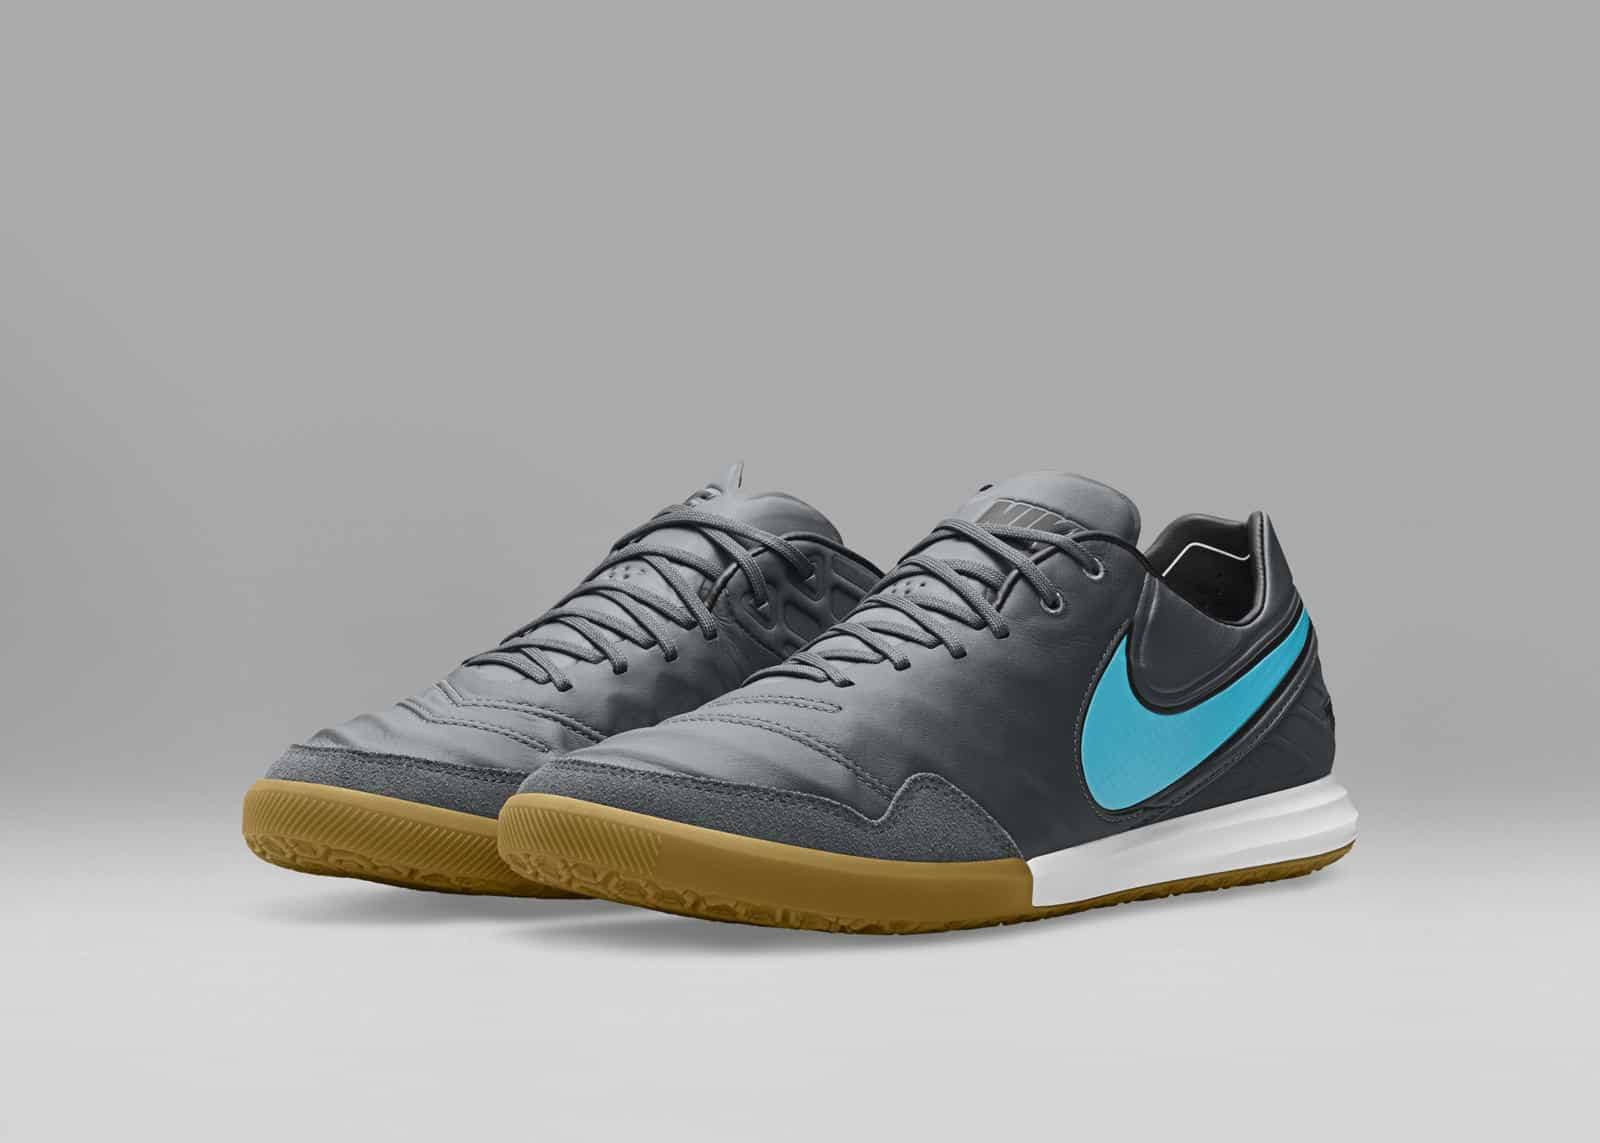 chaussure-football-nike-tiempox-futsal-pack-floodlights-2016-3